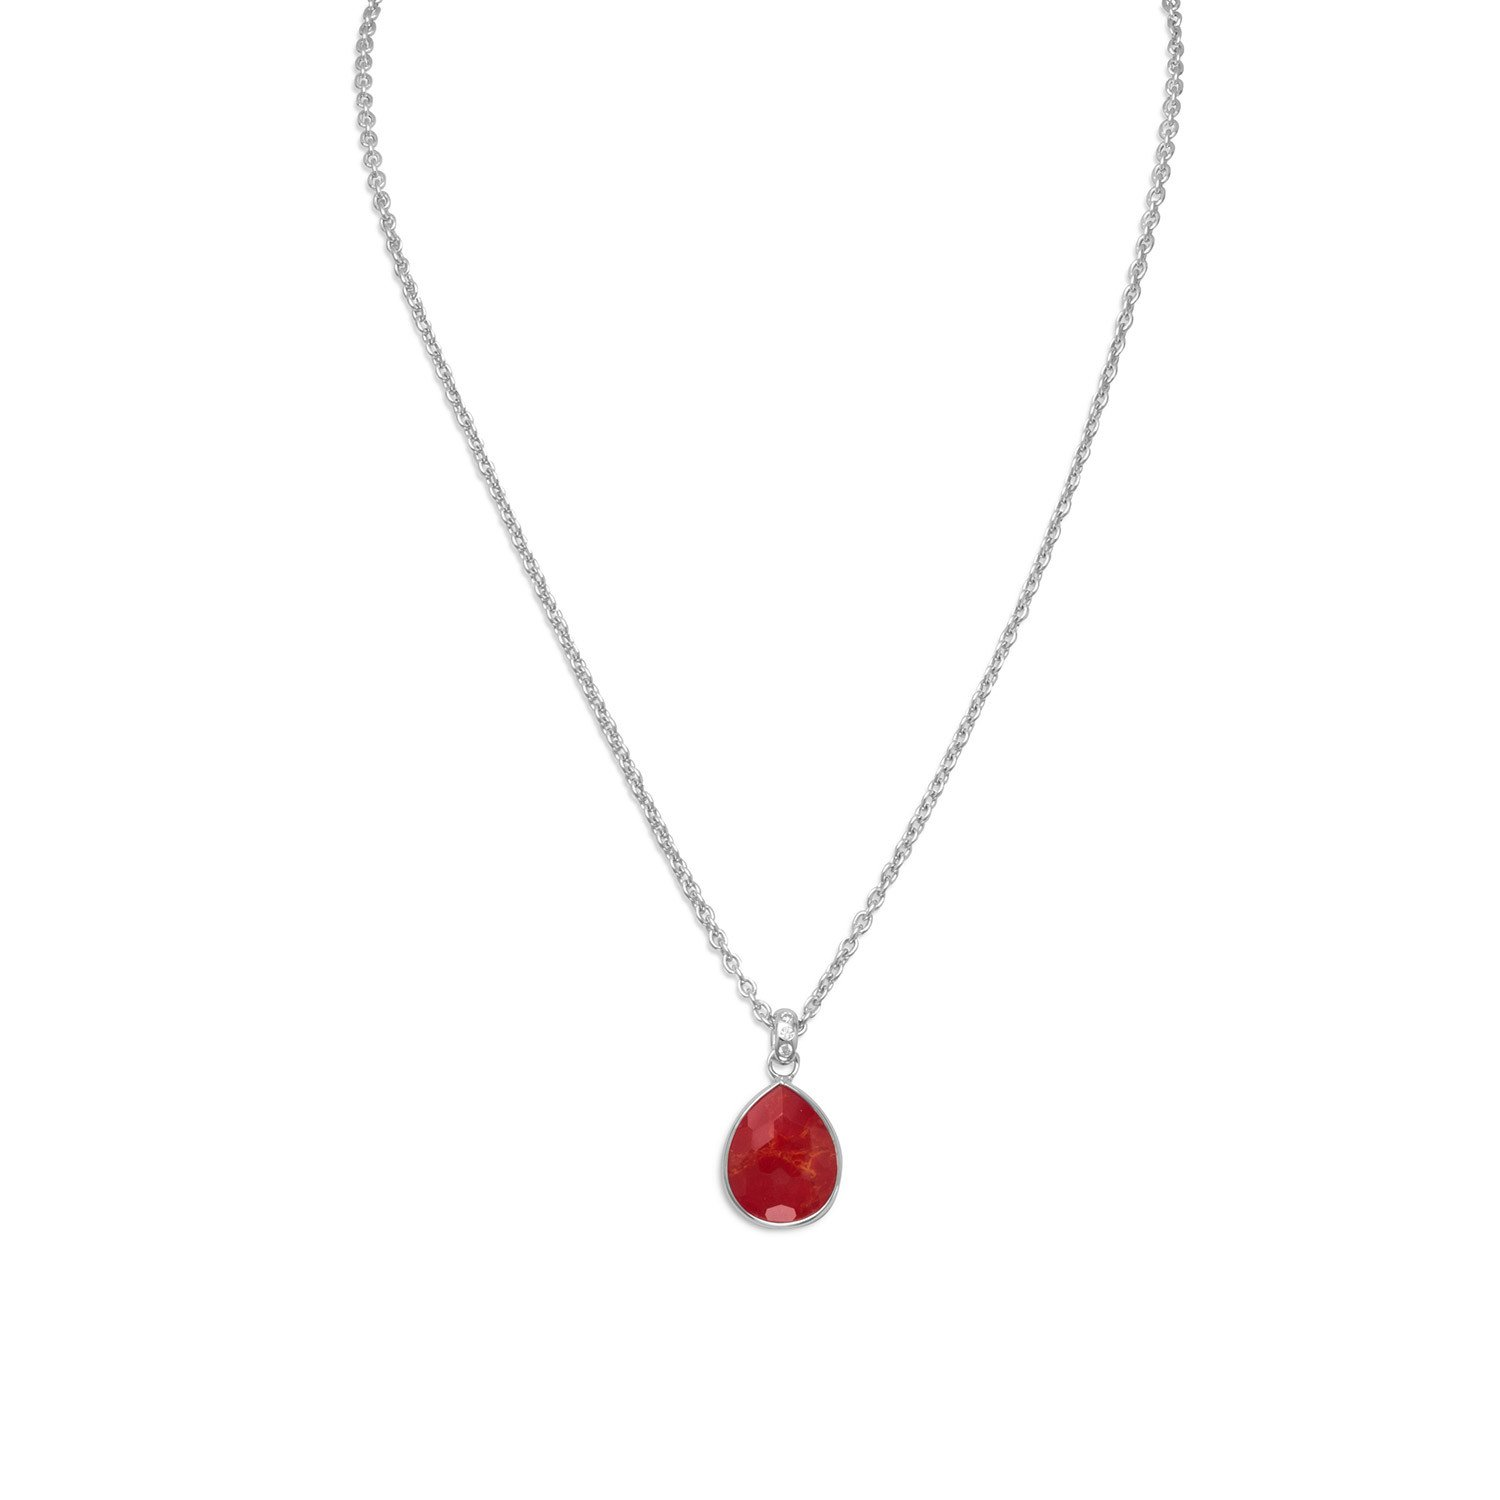 16″ + 2″ Freeform Faceted Quartz over Reconstituted Coral Pear Drop Necklace